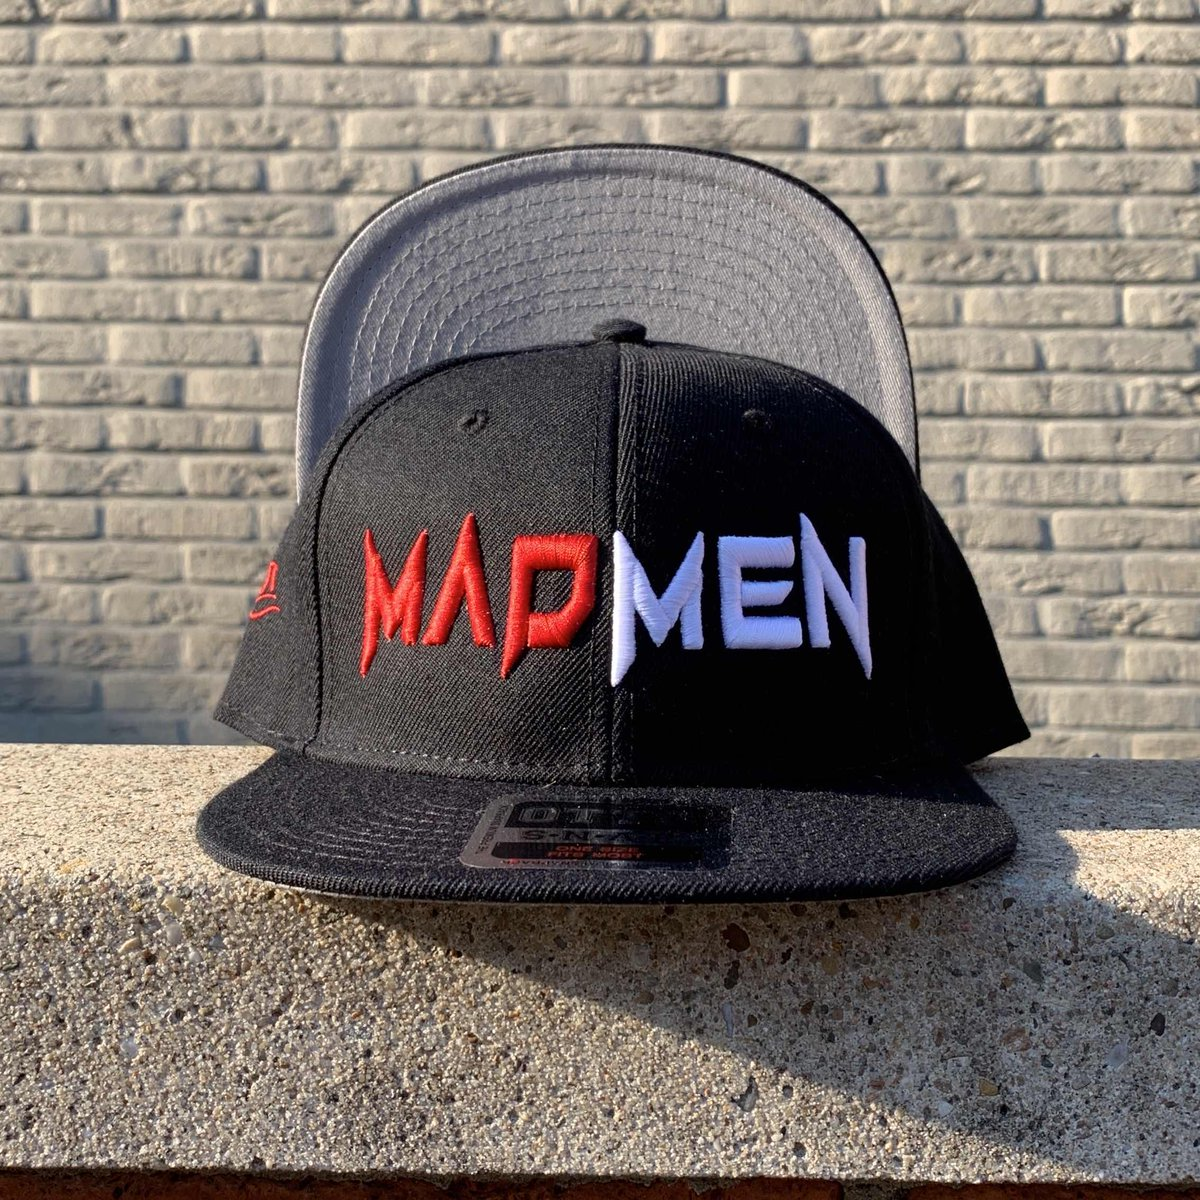 Are you ready for the madness 🤨 https://t.co/0wNj5OL3cH  #hatclub #hatoftheday #snapbackhat #capaddict #teamfitted #hotsnapbacks #snapback #streetapparel #speakwithyourcap #urbanbrand #fashiongram #hat #cap #y#hatgame #hatclubexclusive https://t.co/syieBRotk6